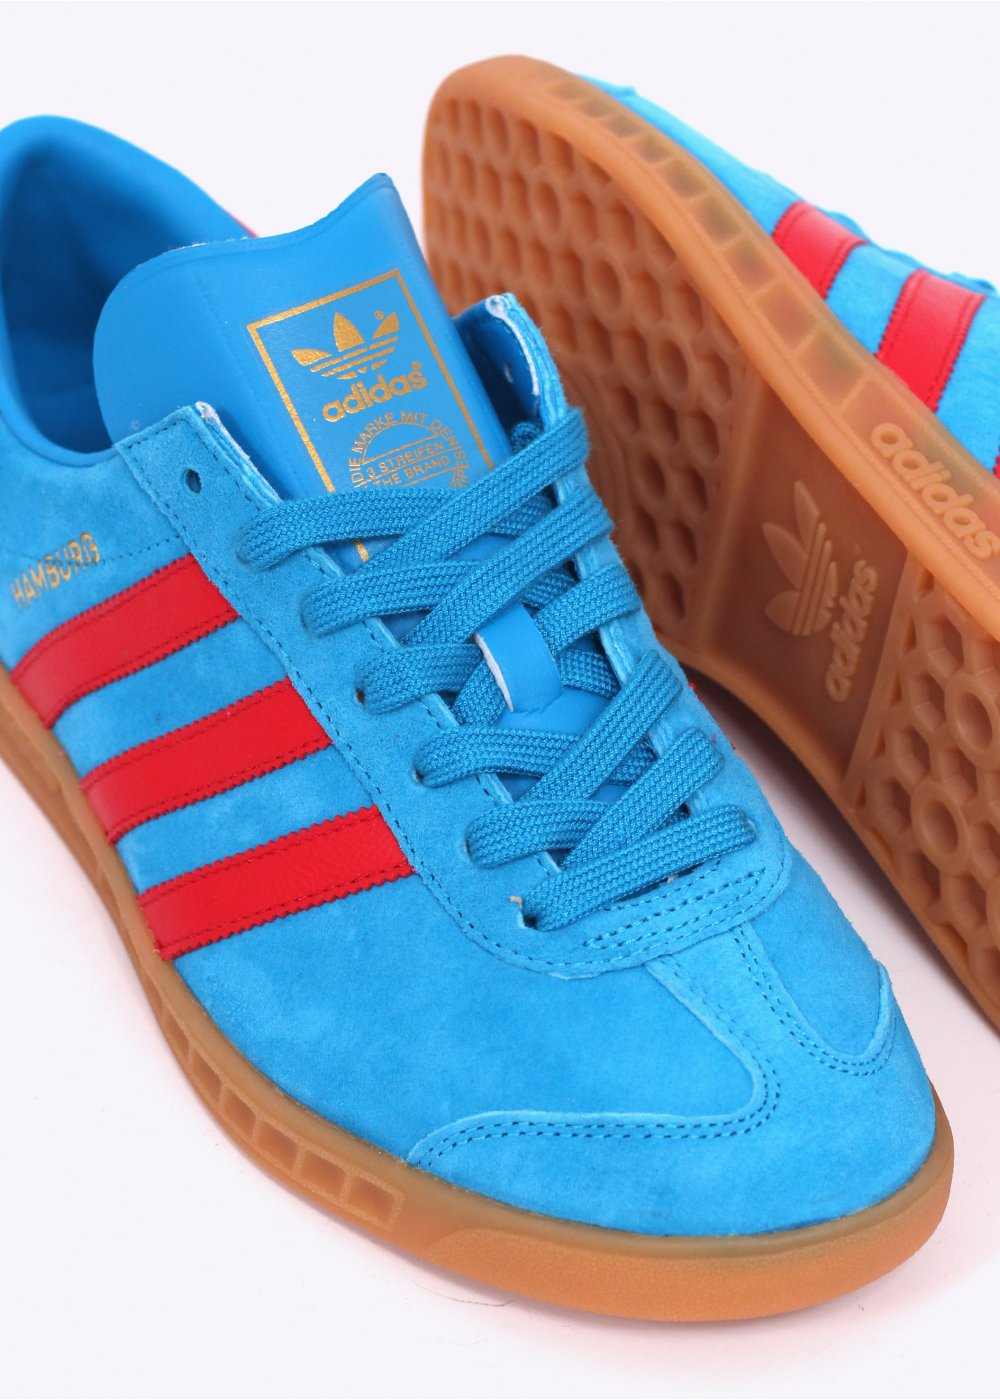 Realista tolerancia cafetería  adidas hamburg blue and red online -